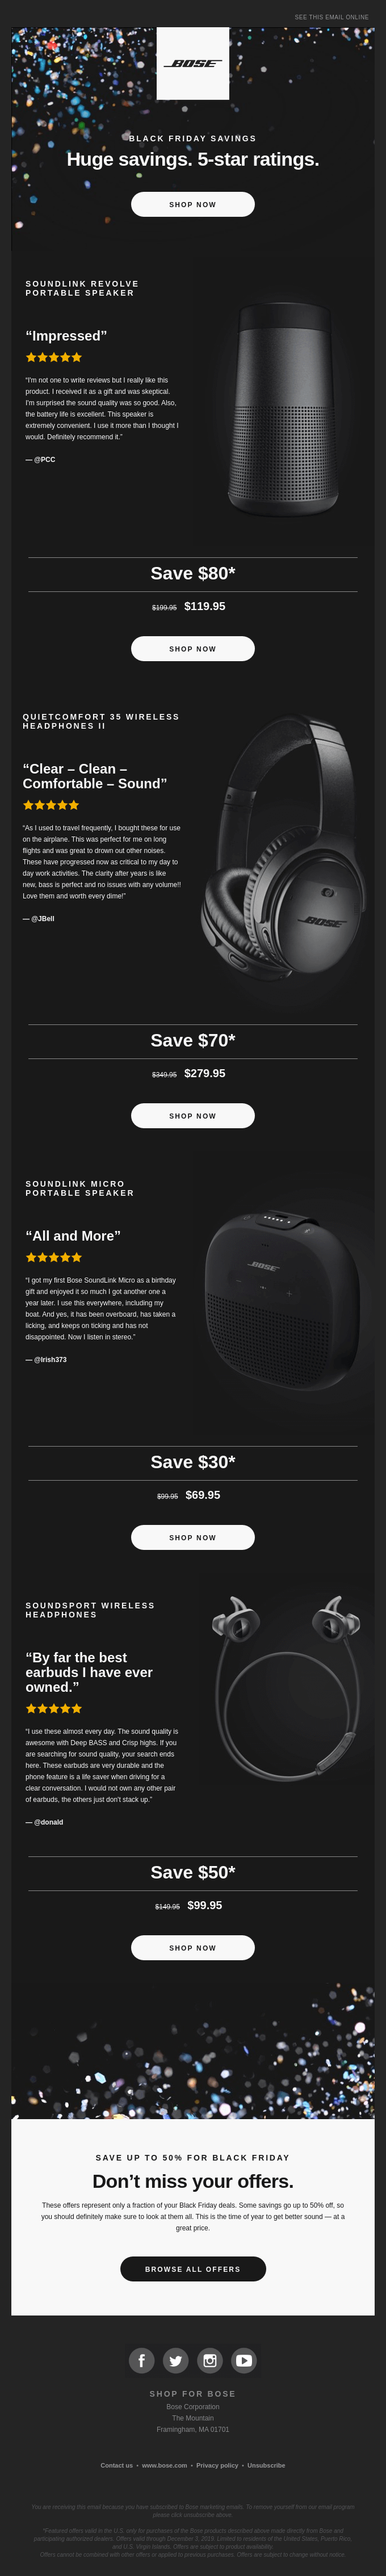 Save up to 50% on speakers and headphones | Black Friday is here